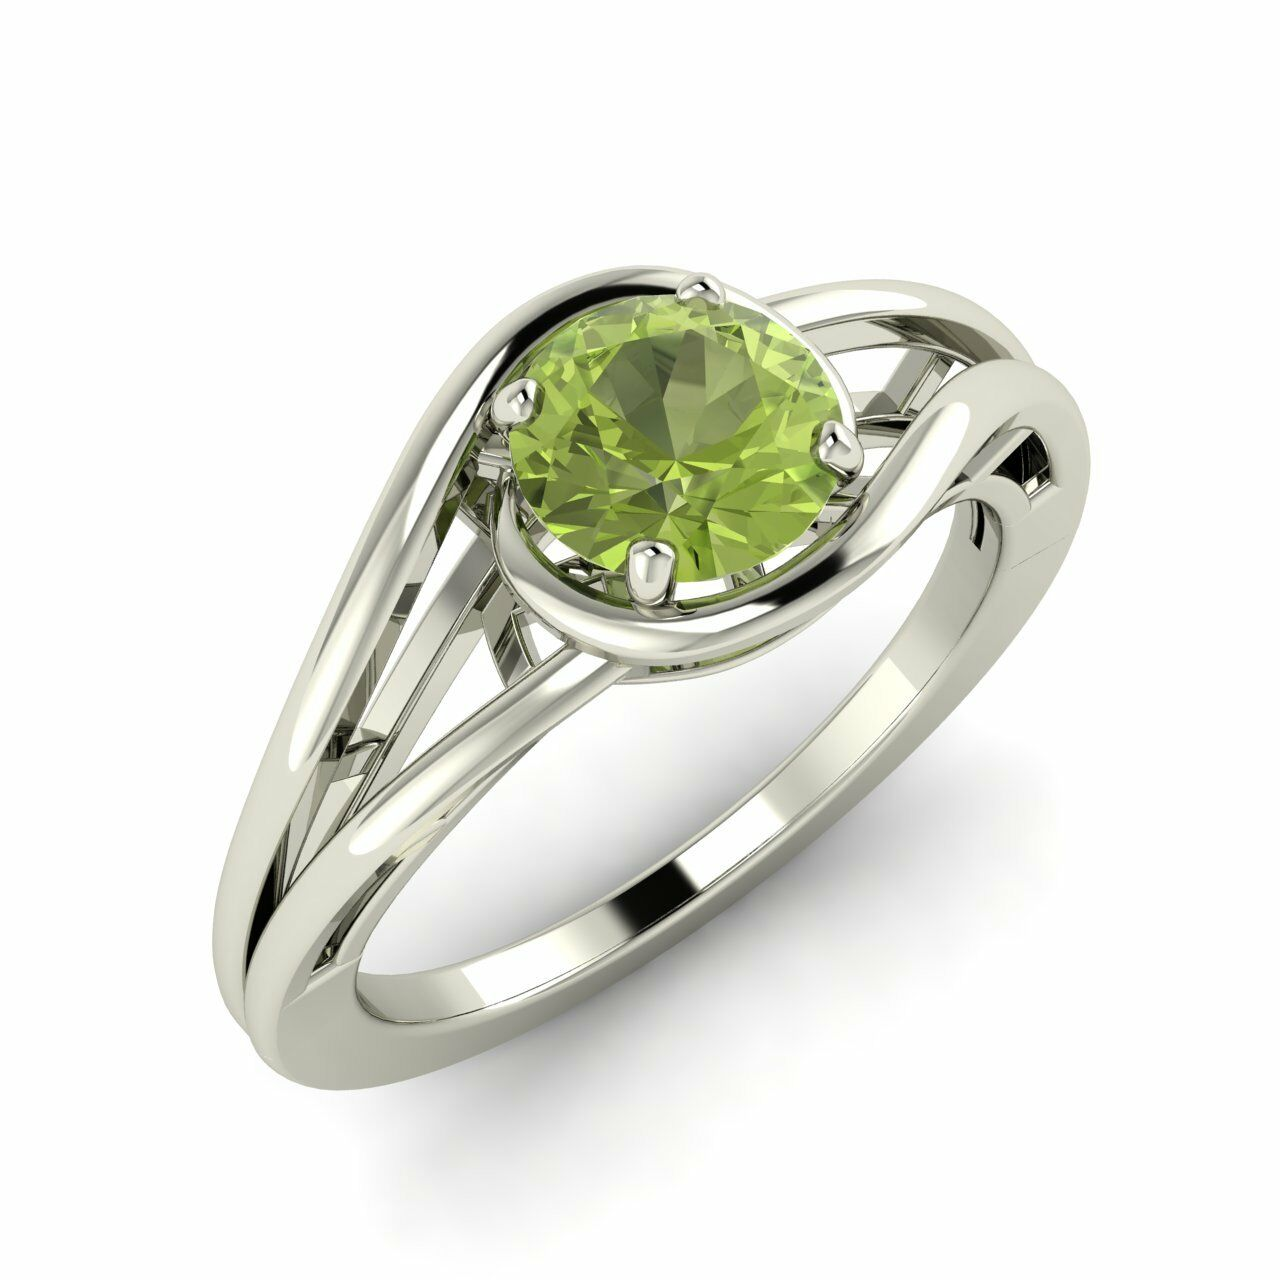 Certified 0.60 Ct Natural Peridot Solitaire Engagement Ring in 14k White gold